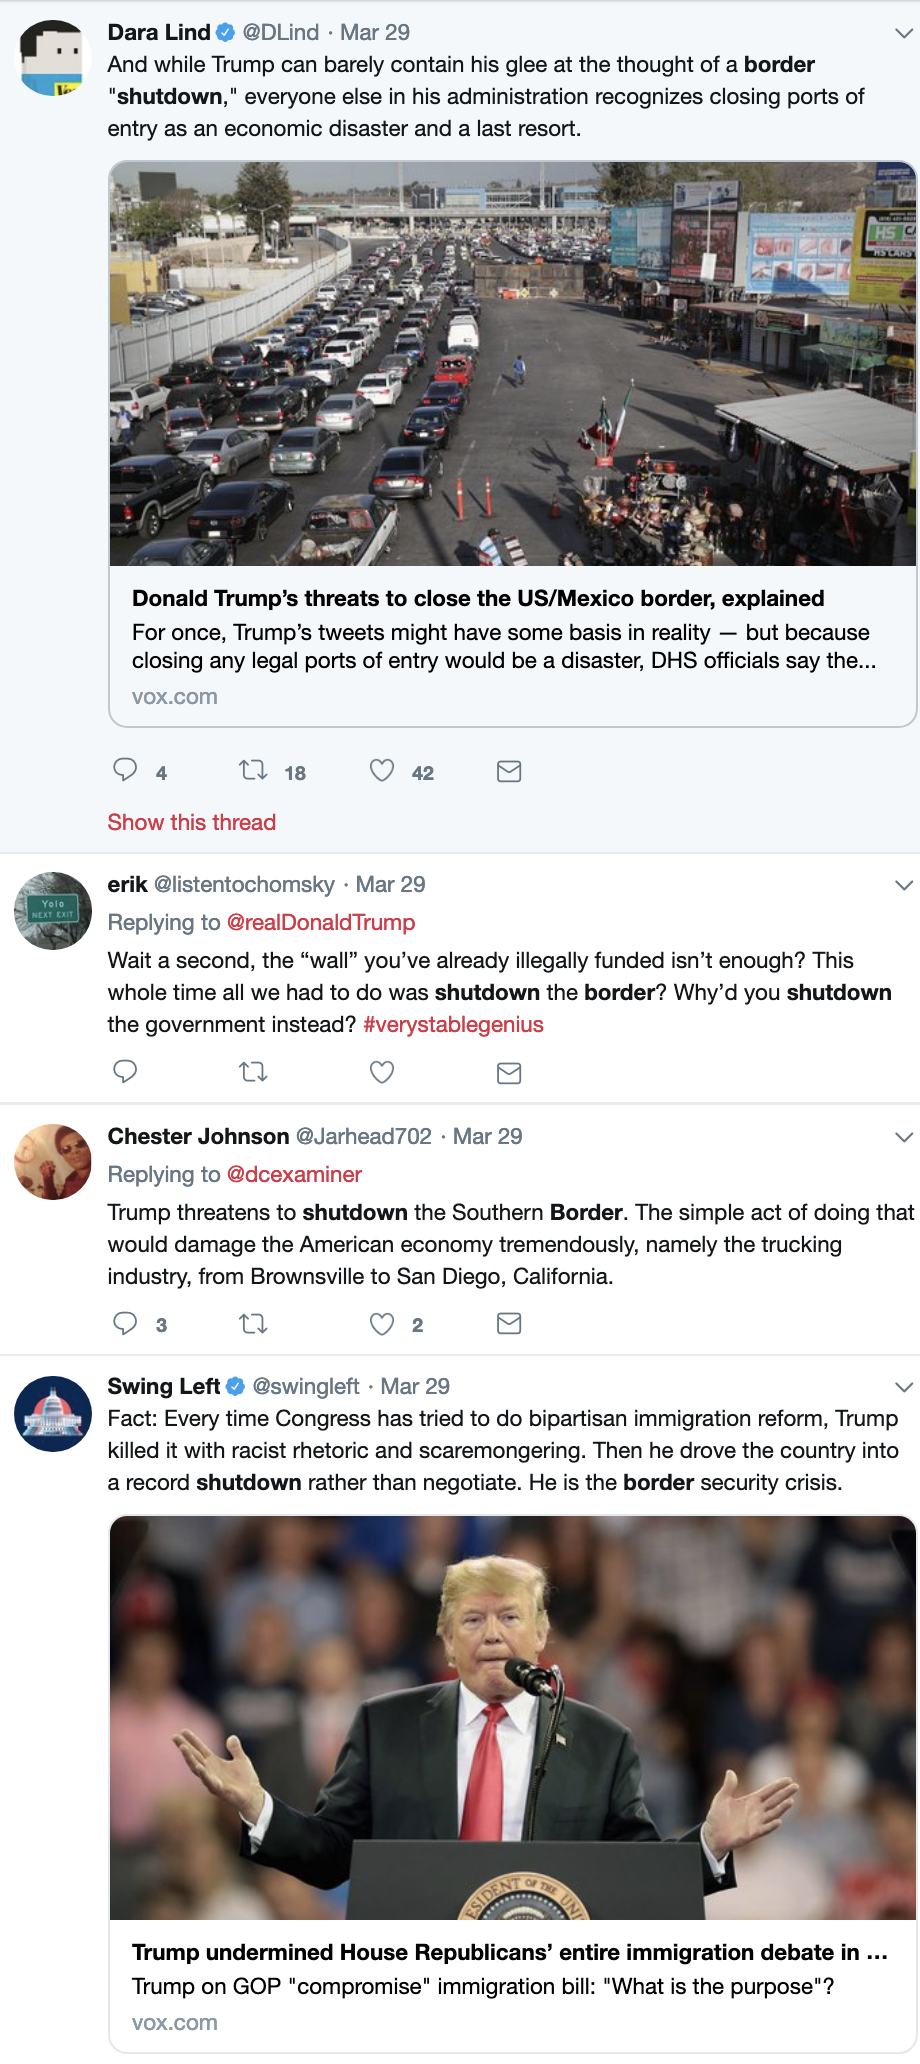 Screen-Shot-2019-03-31-at-12.49.26-PM Trump's Trusted Border Officials Publicly Throw Him Under The Bus (DETAILS) Child Abuse Corruption Crime Donald Trump Immigration Politics Racism Refugees Top Stories